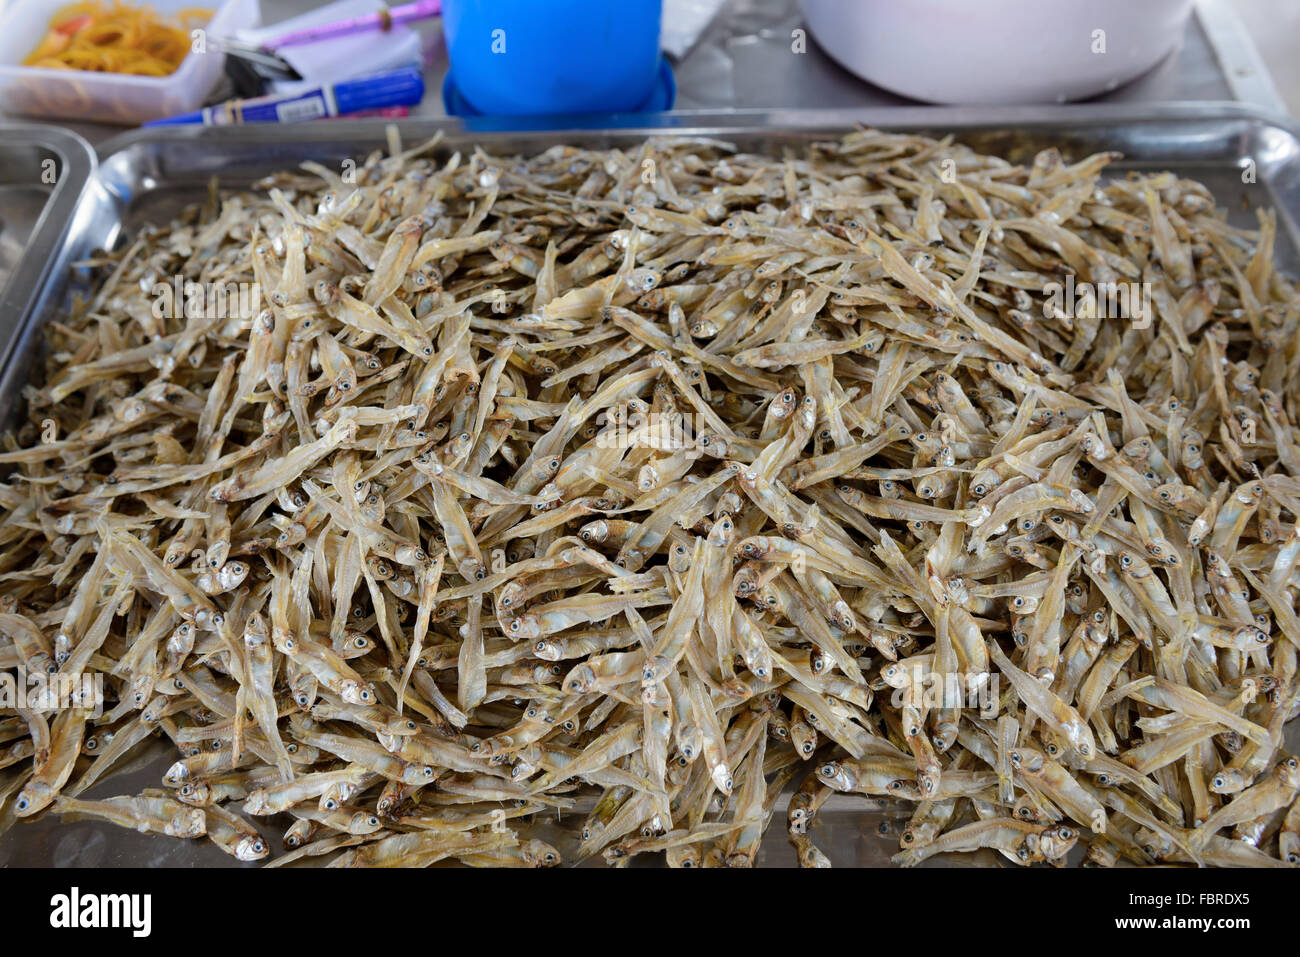 large among of small salted fish - Stock Image